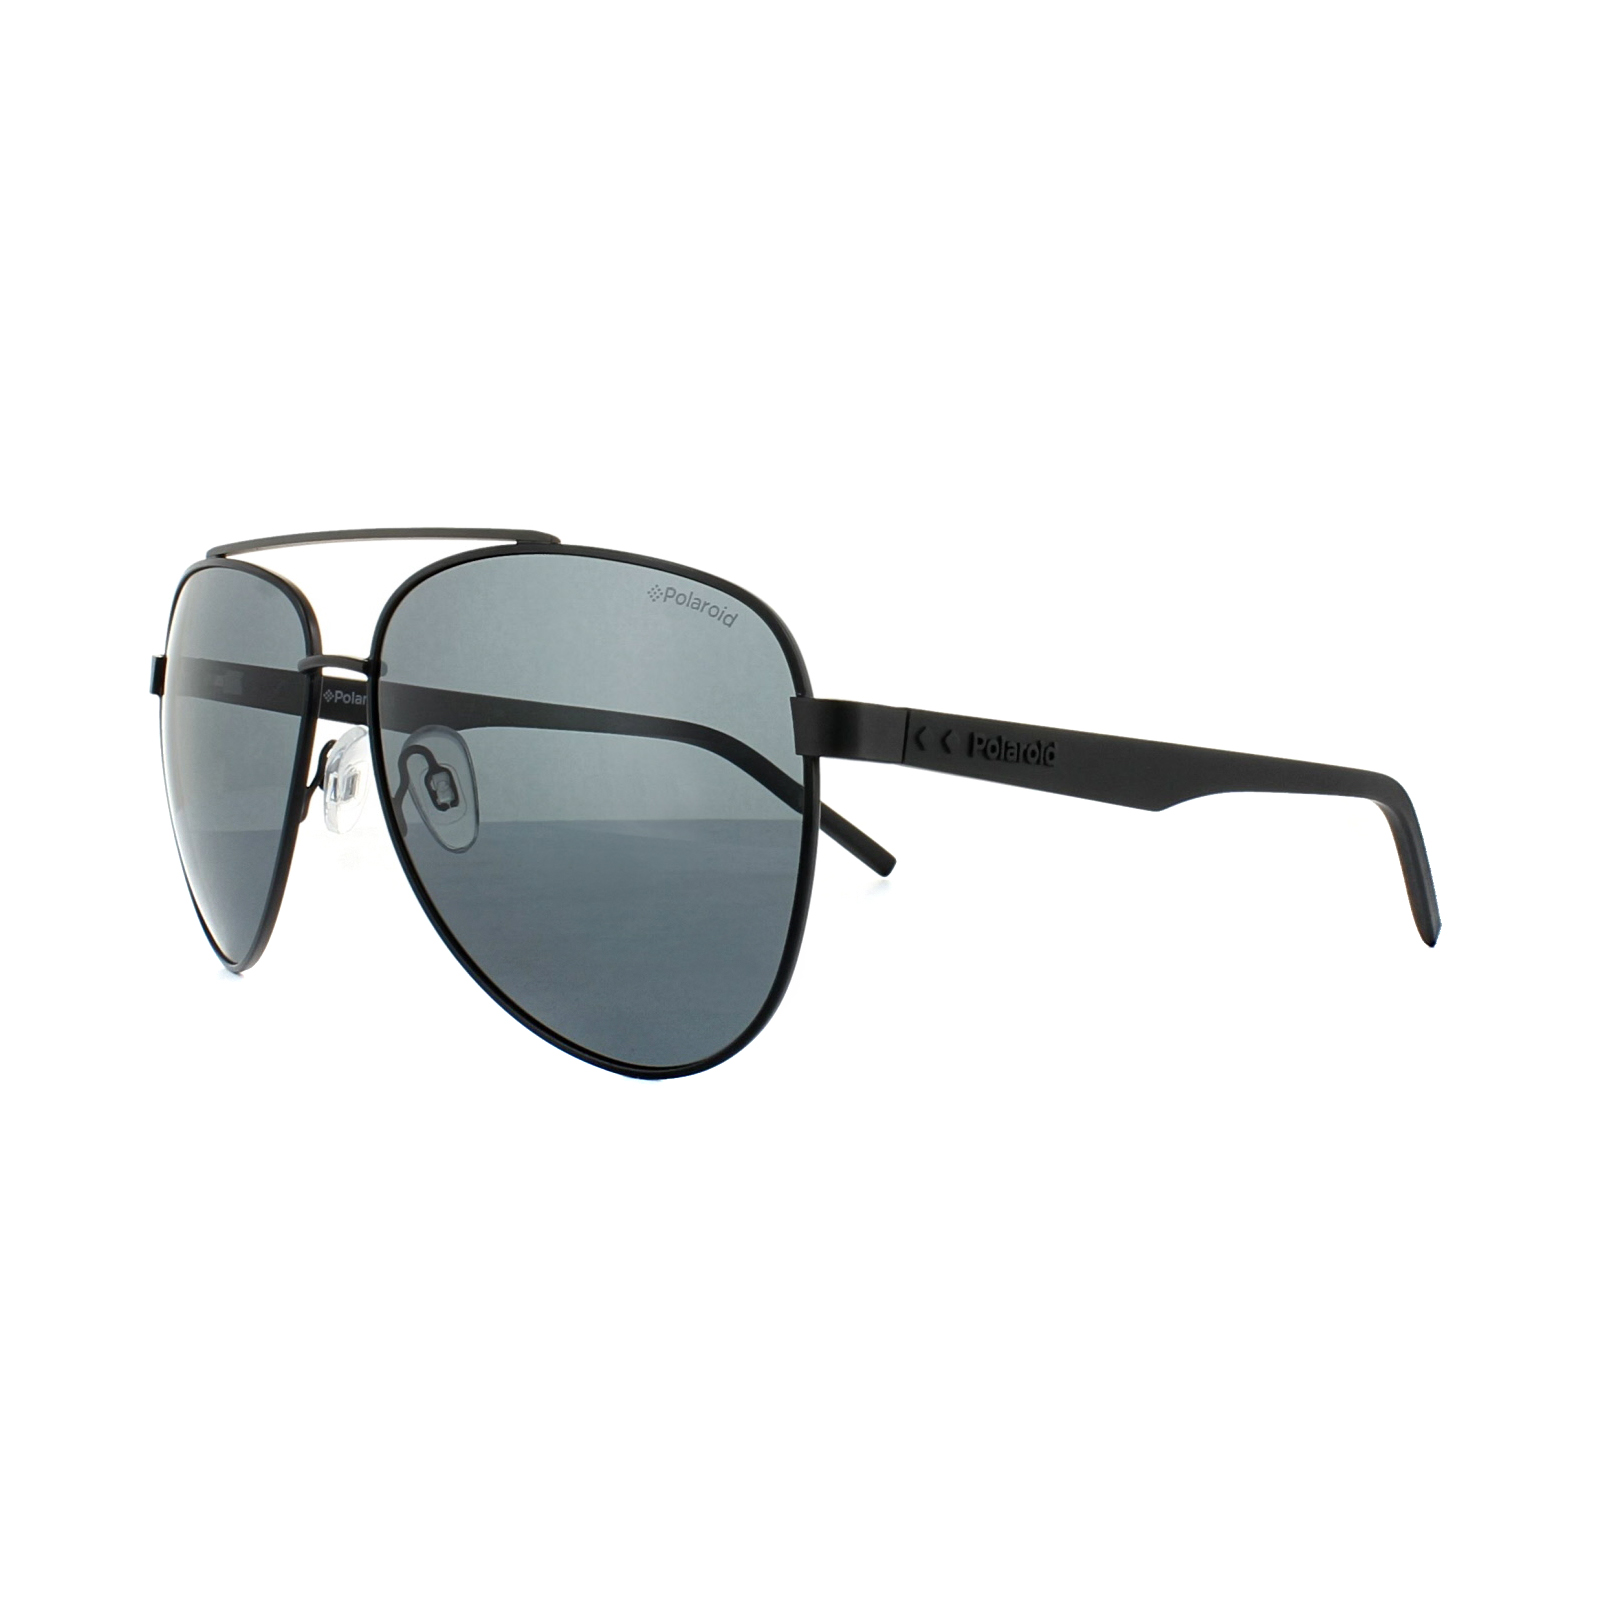 Sentinel Polaroid Sunglasses PLD 2043/S 807 M9 Black Grey Polarized